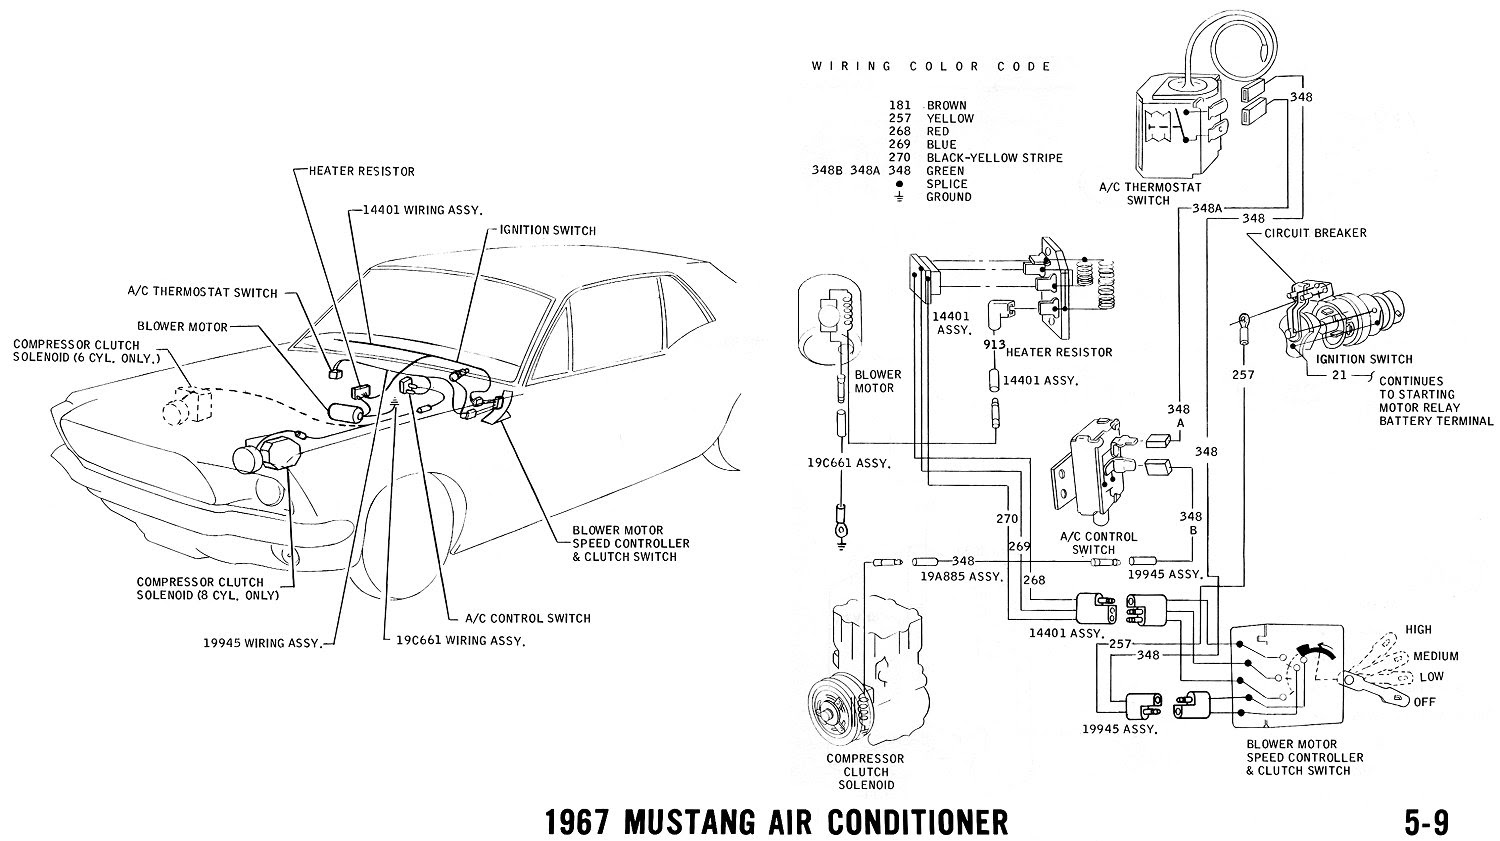 Diagram 1969 Mustang Heater Control Wiring Diagram Full Version Hd Quality Wiring Diagram Diagramini17 Jftechnology It